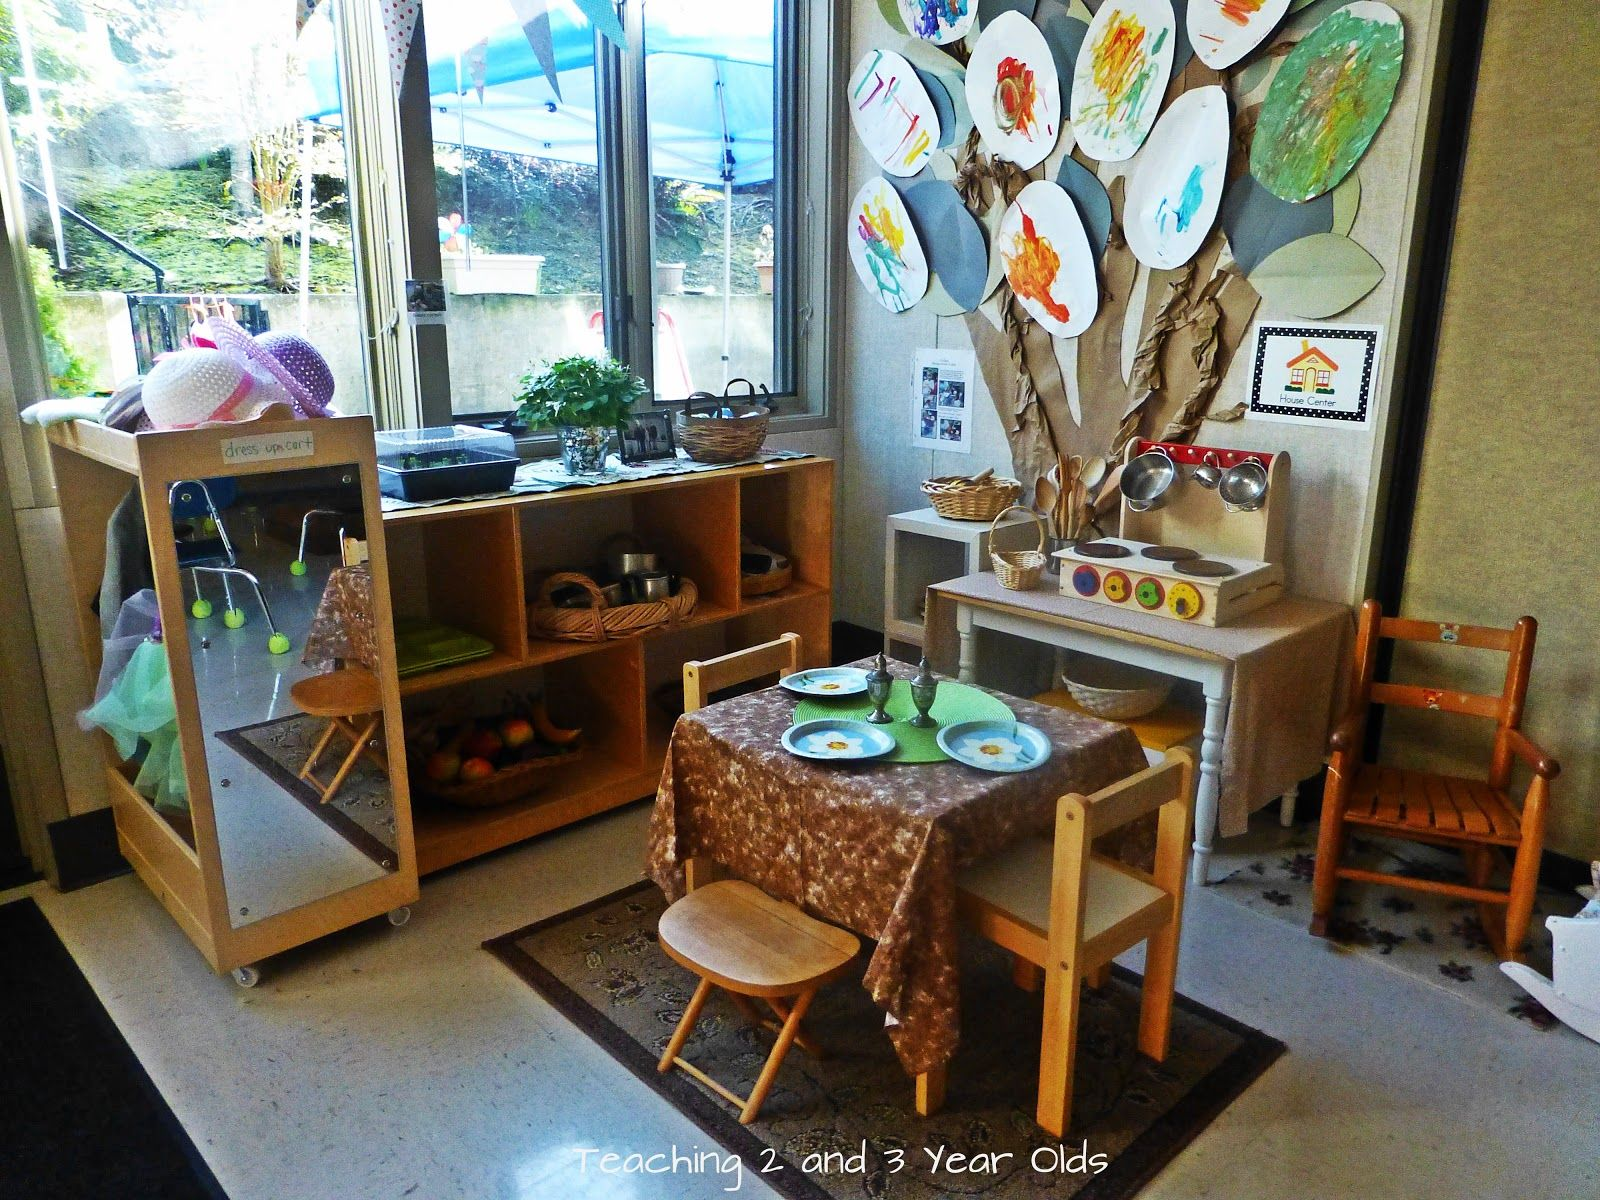 Teaching 2 and 3 Year Olds: Adding Natural Materials to the Classroom